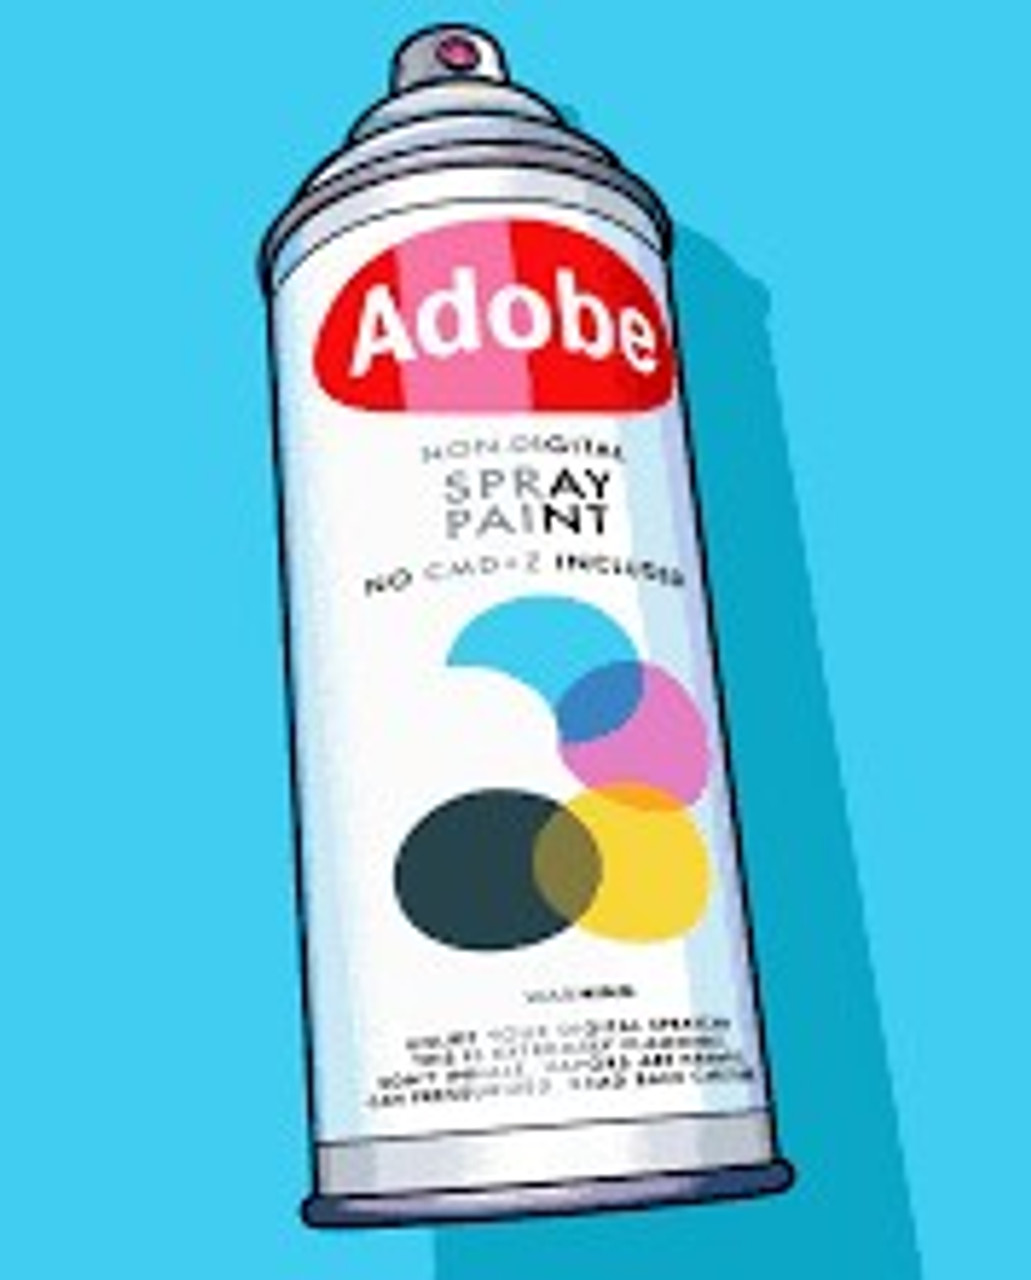 Lincoln touch up pint color Adobe (comes in spray can)